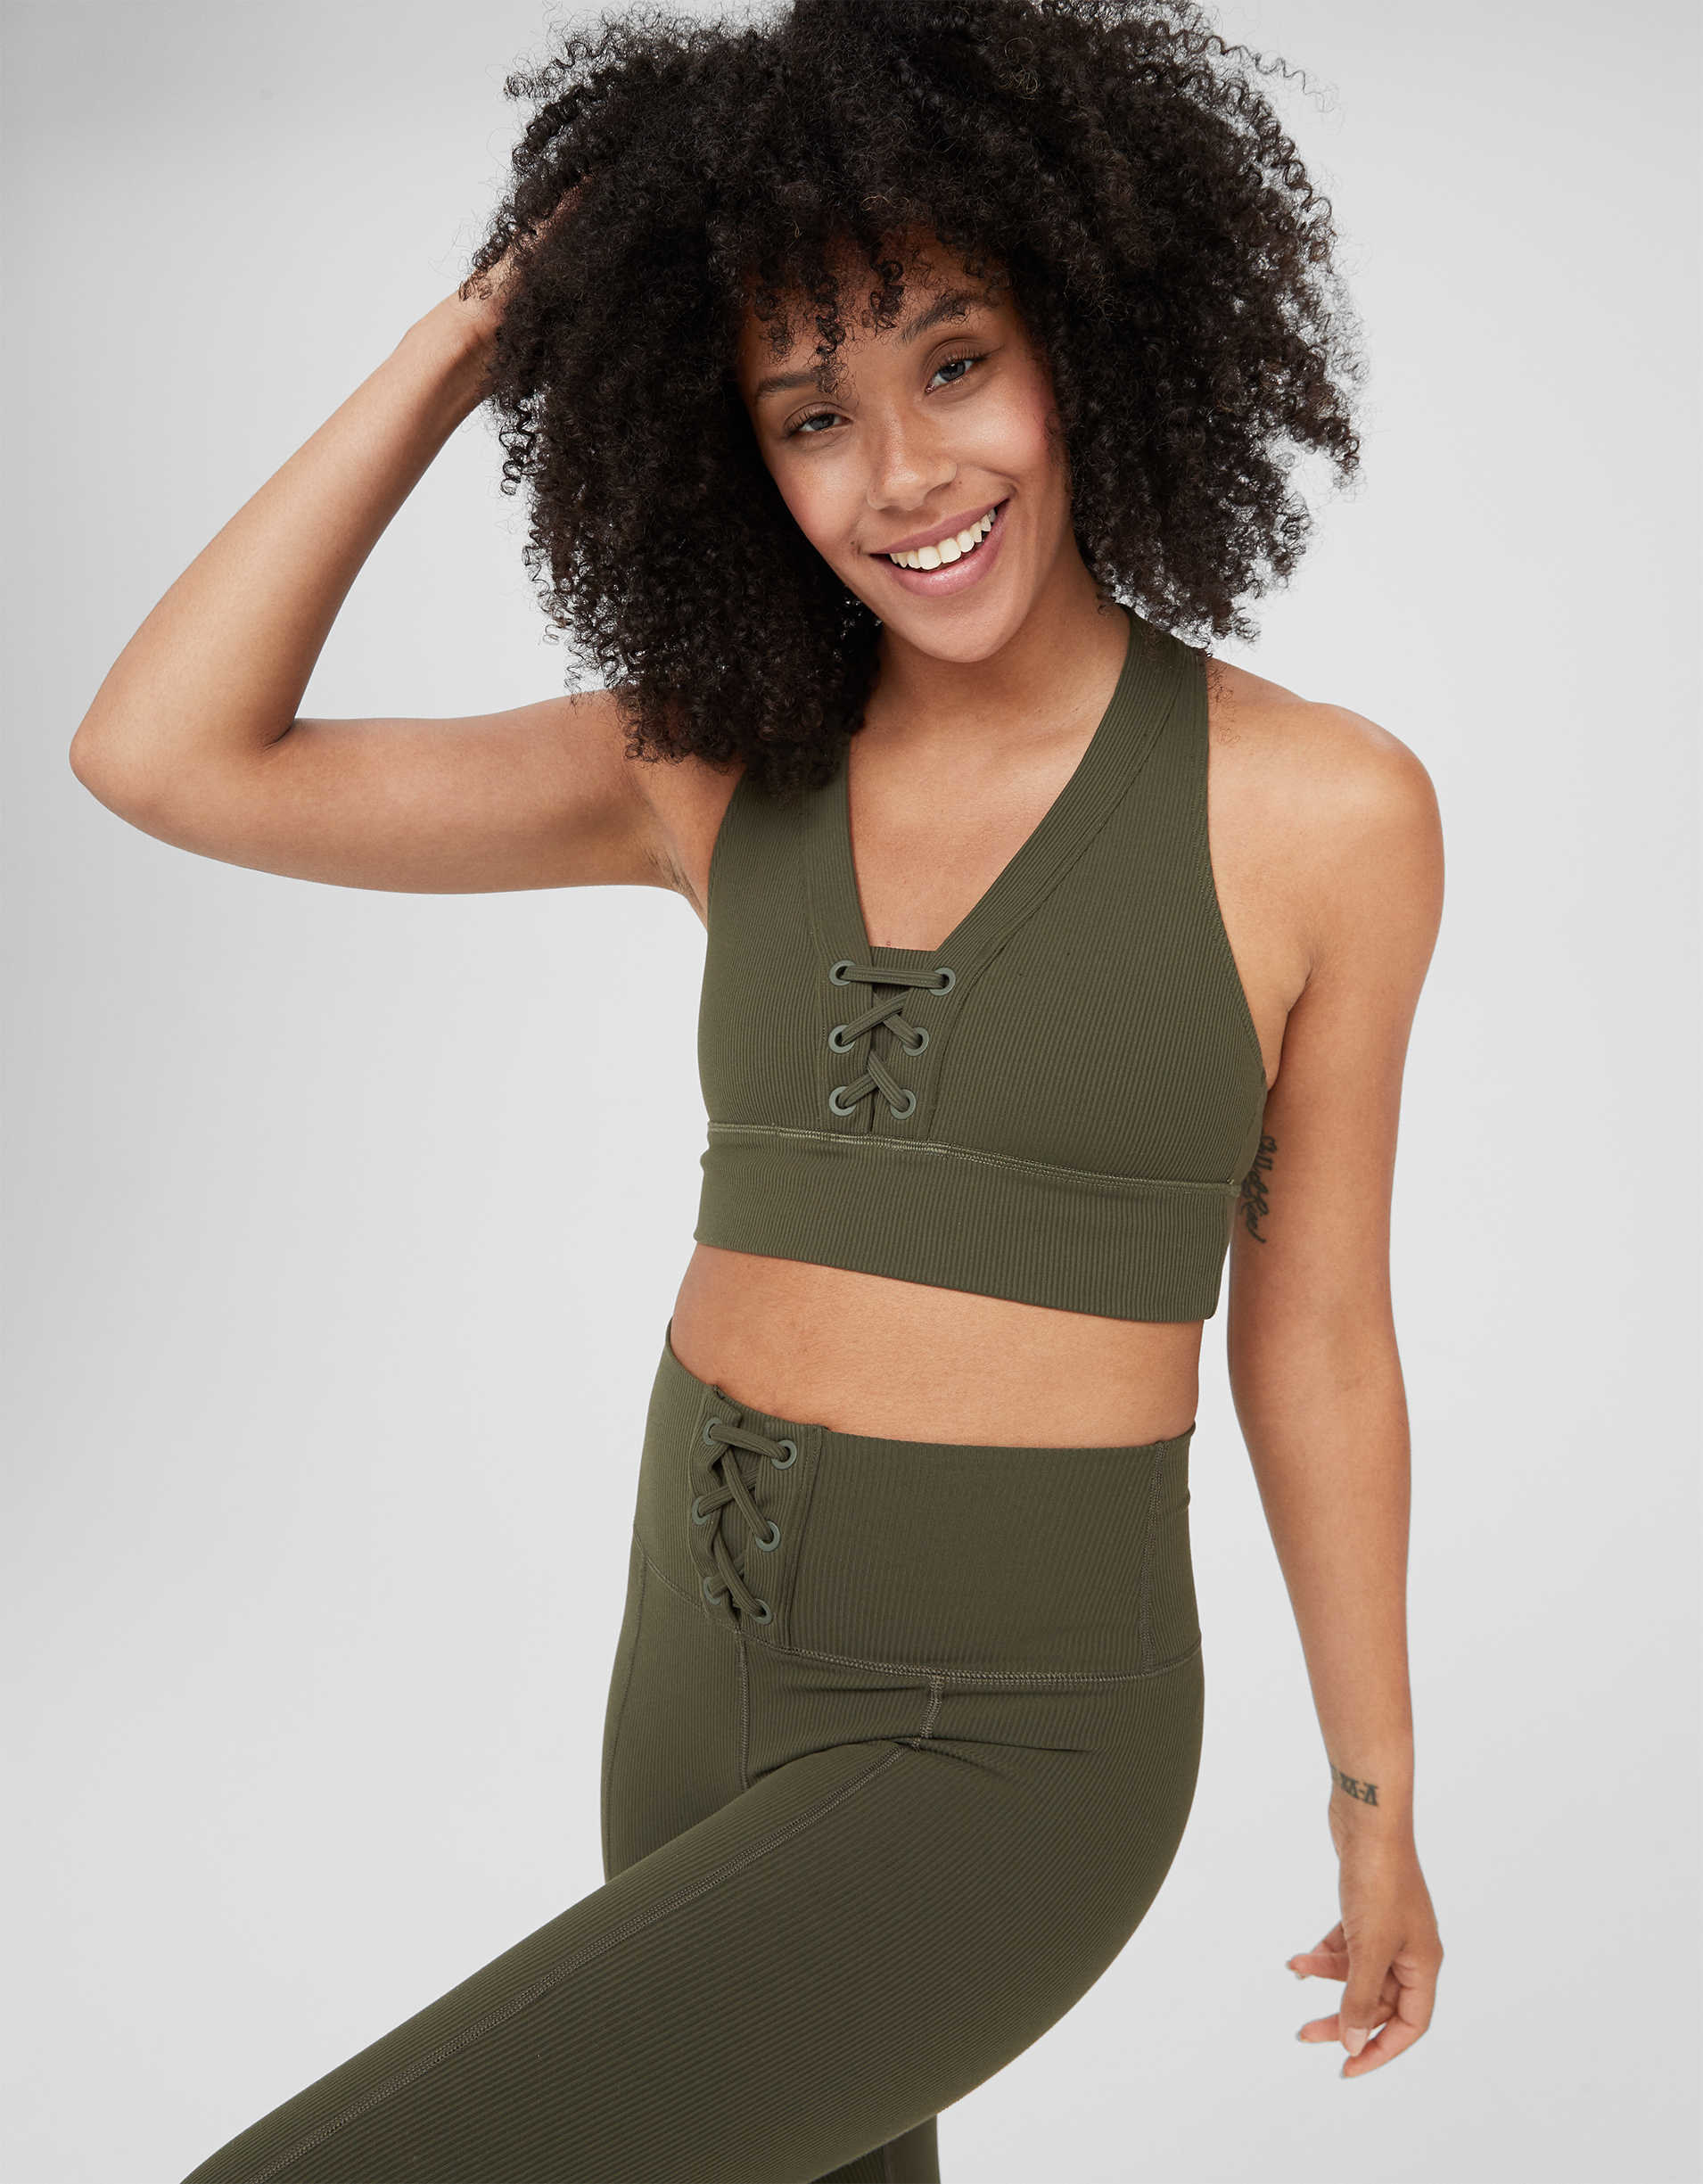 Model wearing the sports bra with thick straps, thick band around the chest, and a lace-up front by the neckline in green